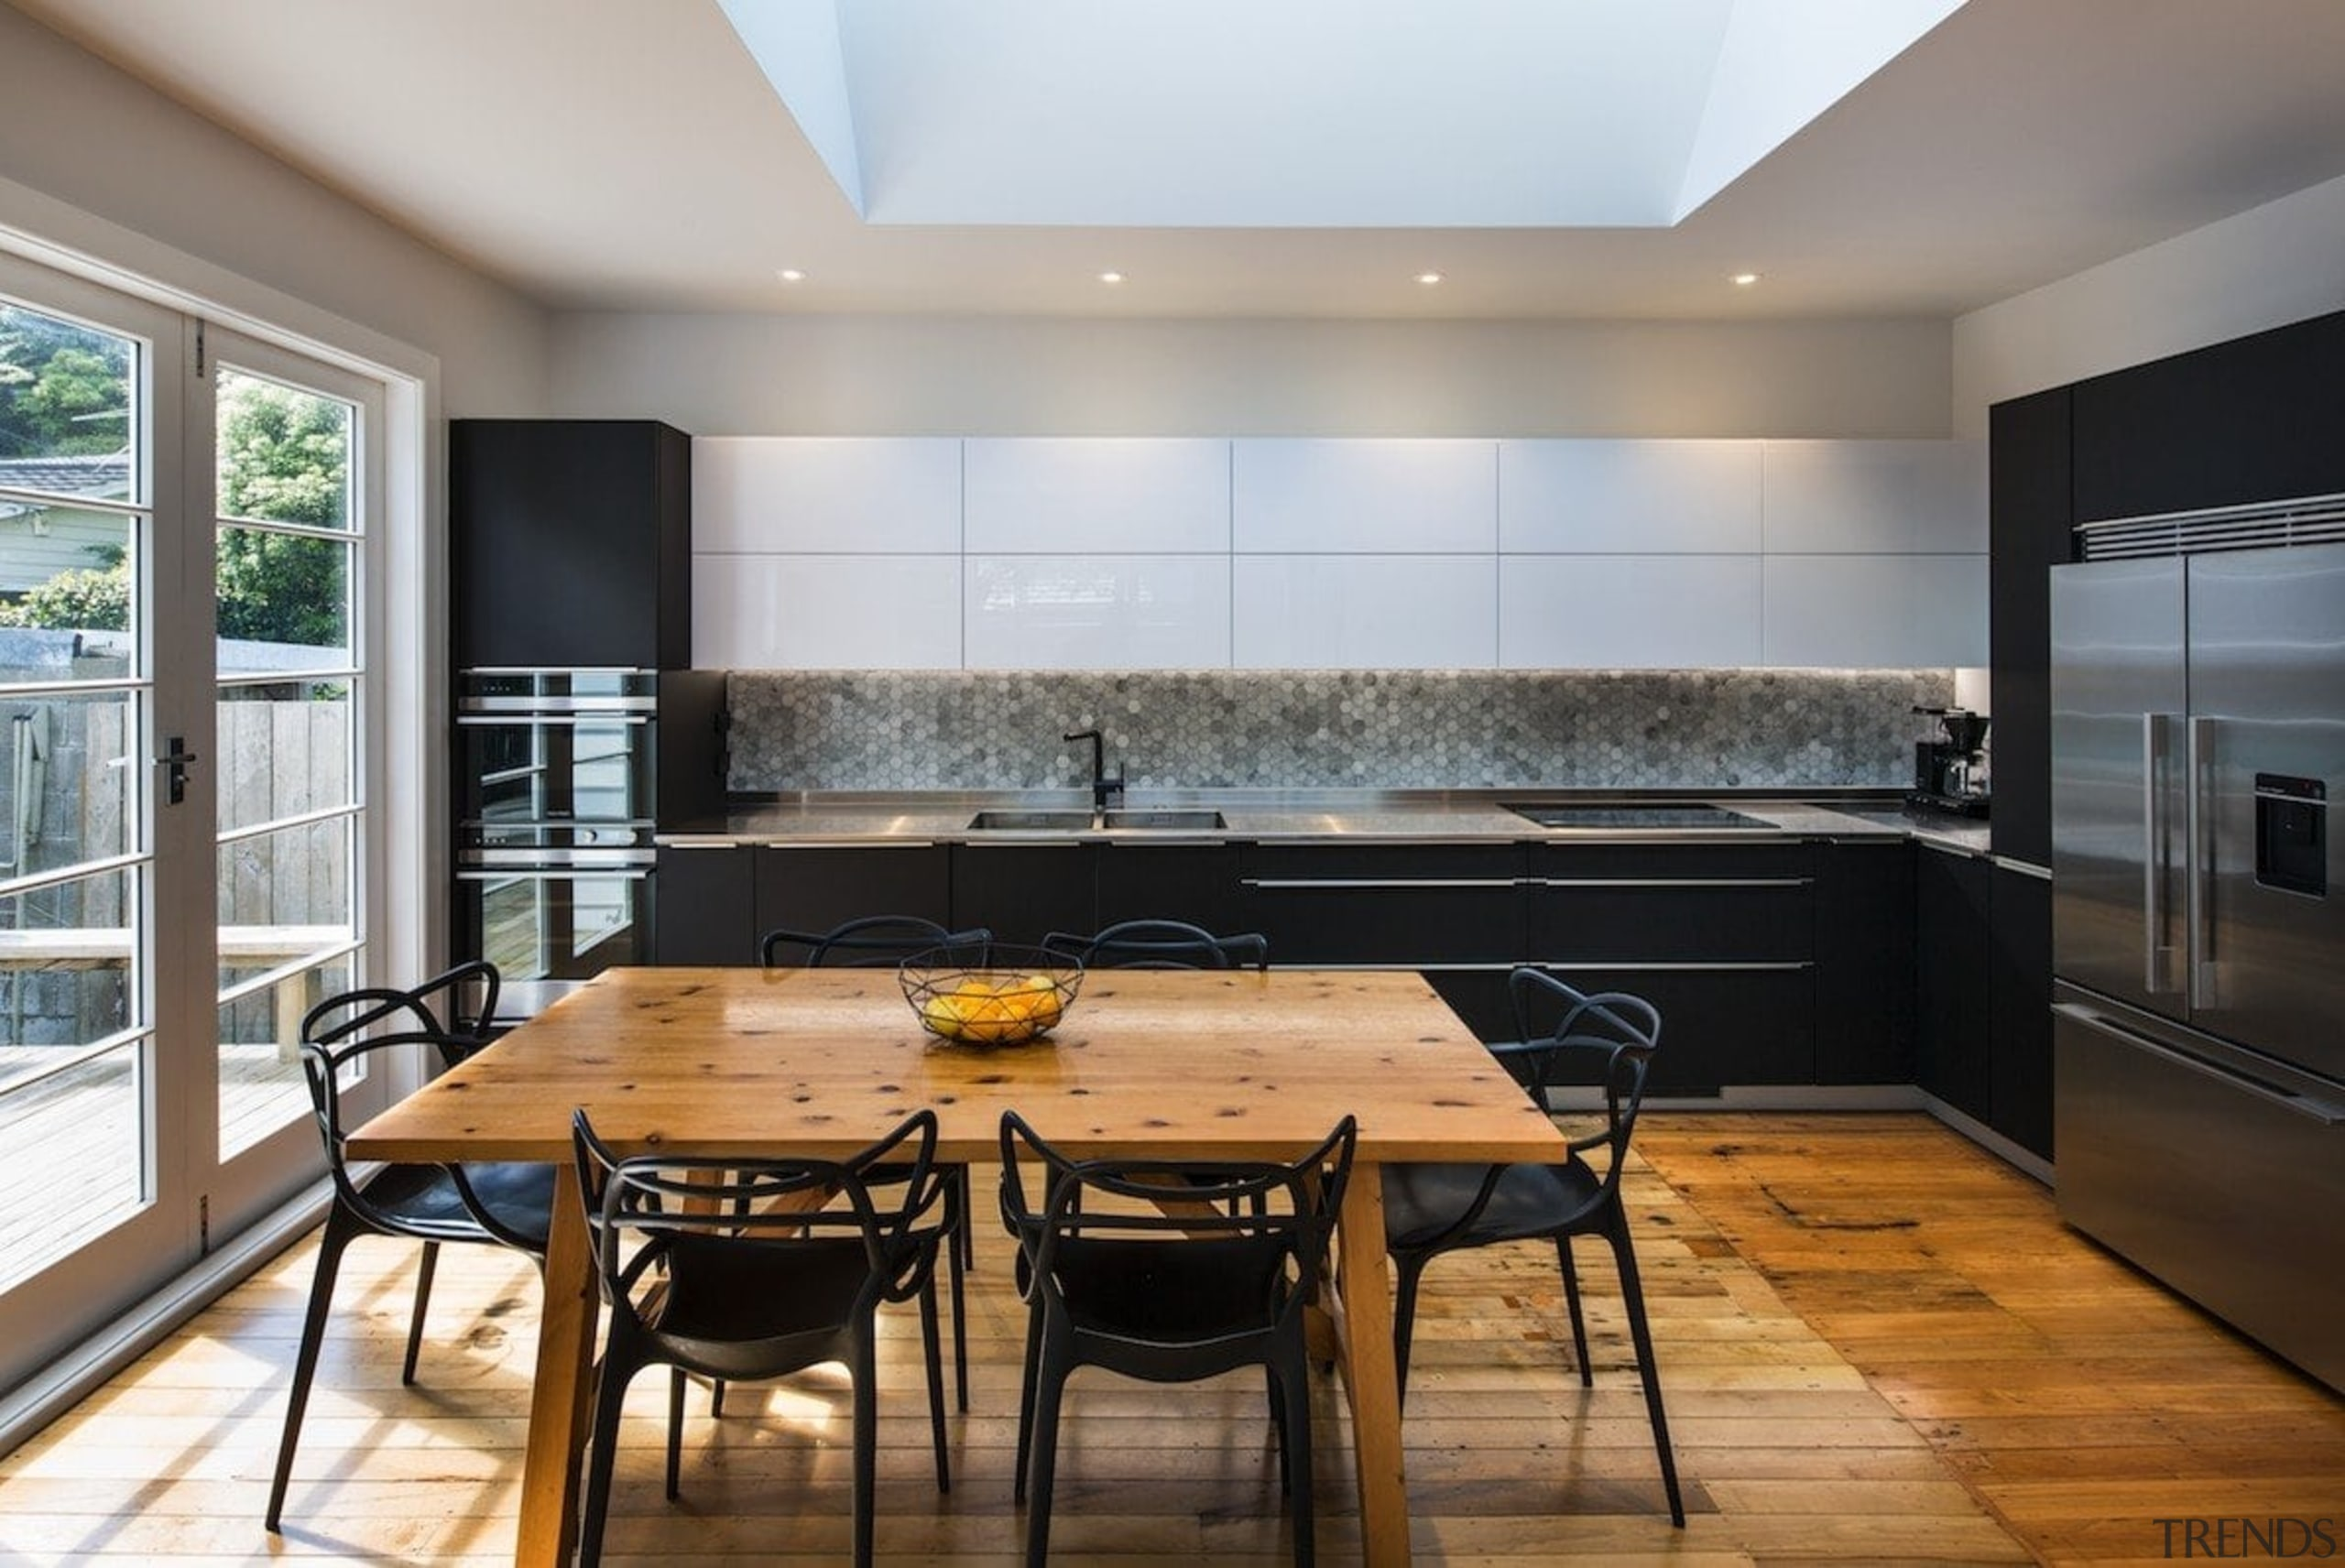 Highly Commended – German Kitchens - architecture | architecture, countertop, interior design, kitchen, real estate, window, gray